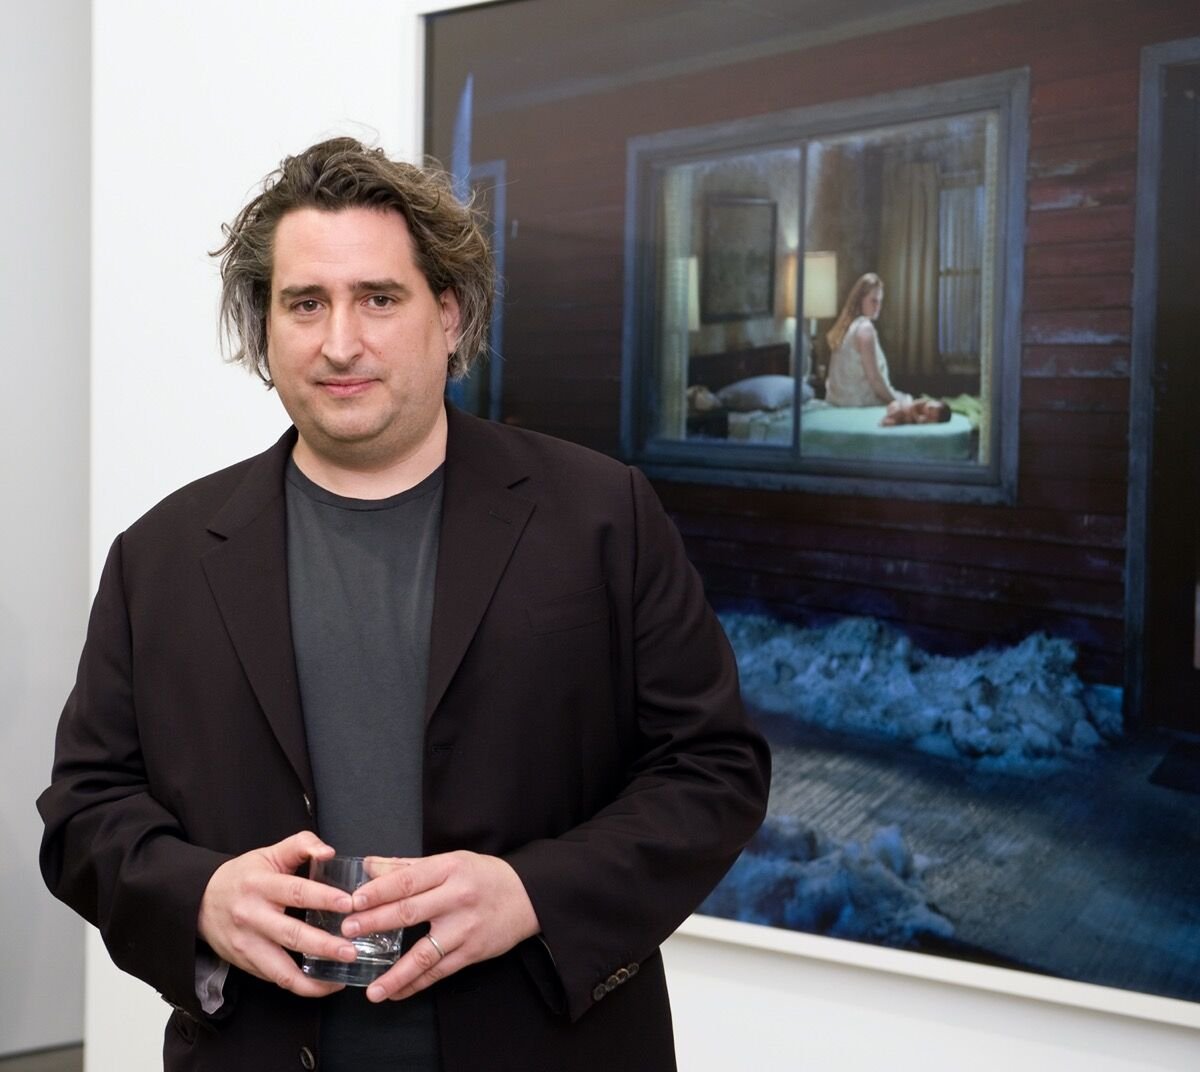 Portrait of Gregory Crewdson at White Cube Gallery, London. Photo by Nick Harvey/WireImage. Image courtesy of Getty Images.